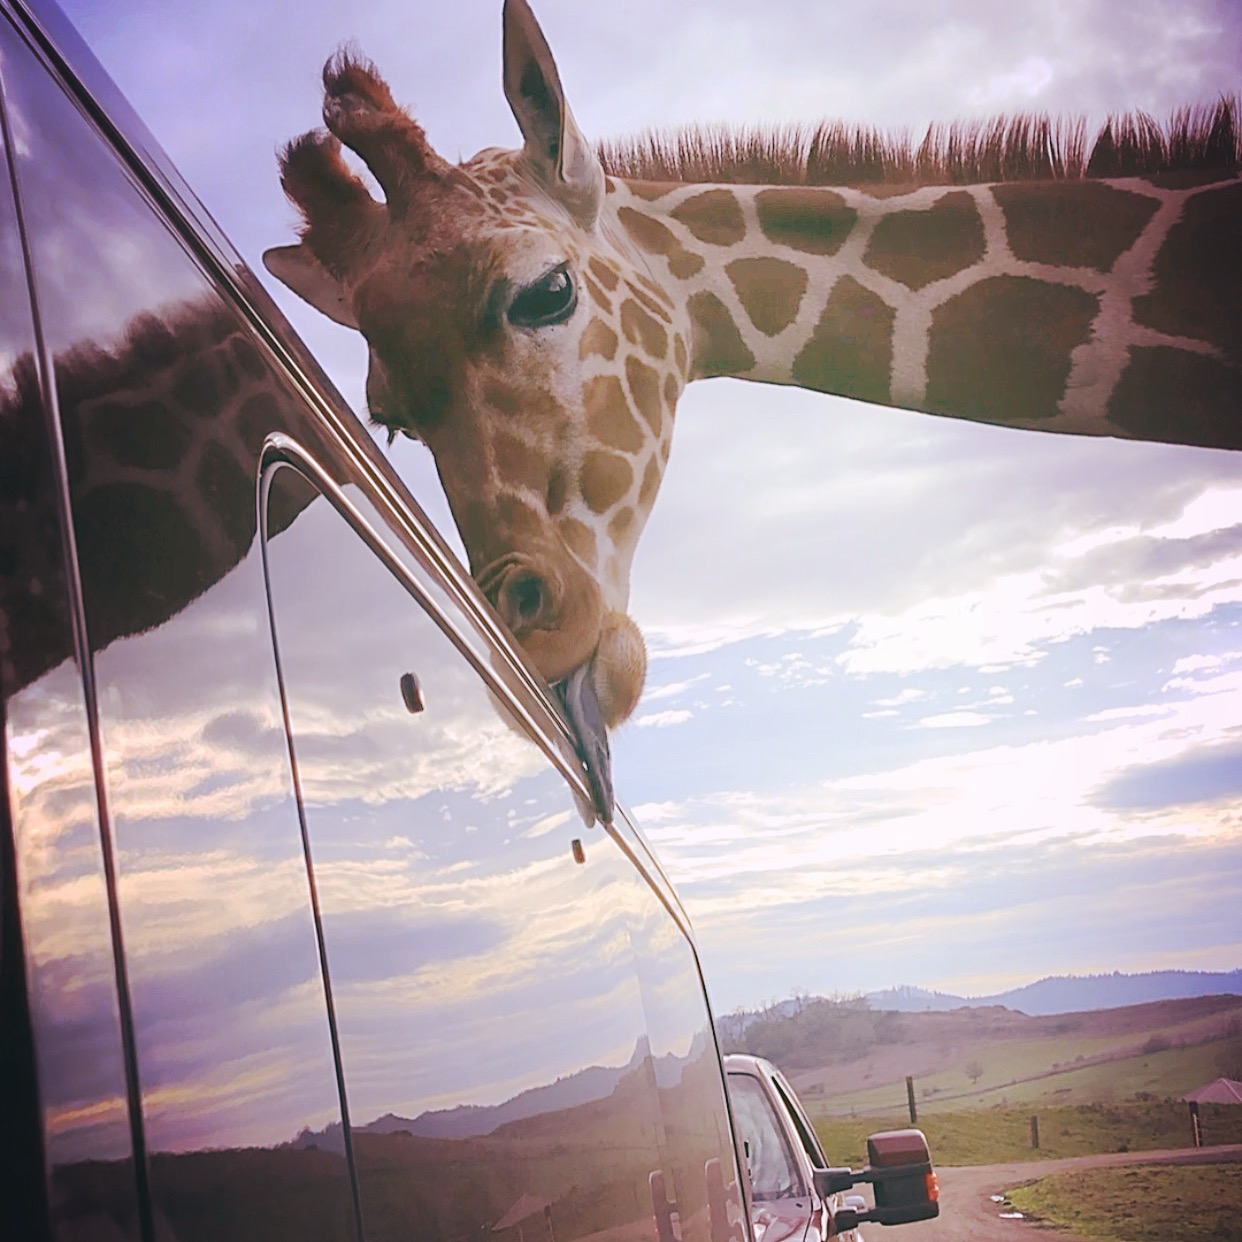 Giraffe Encounter at Wildlife Safari